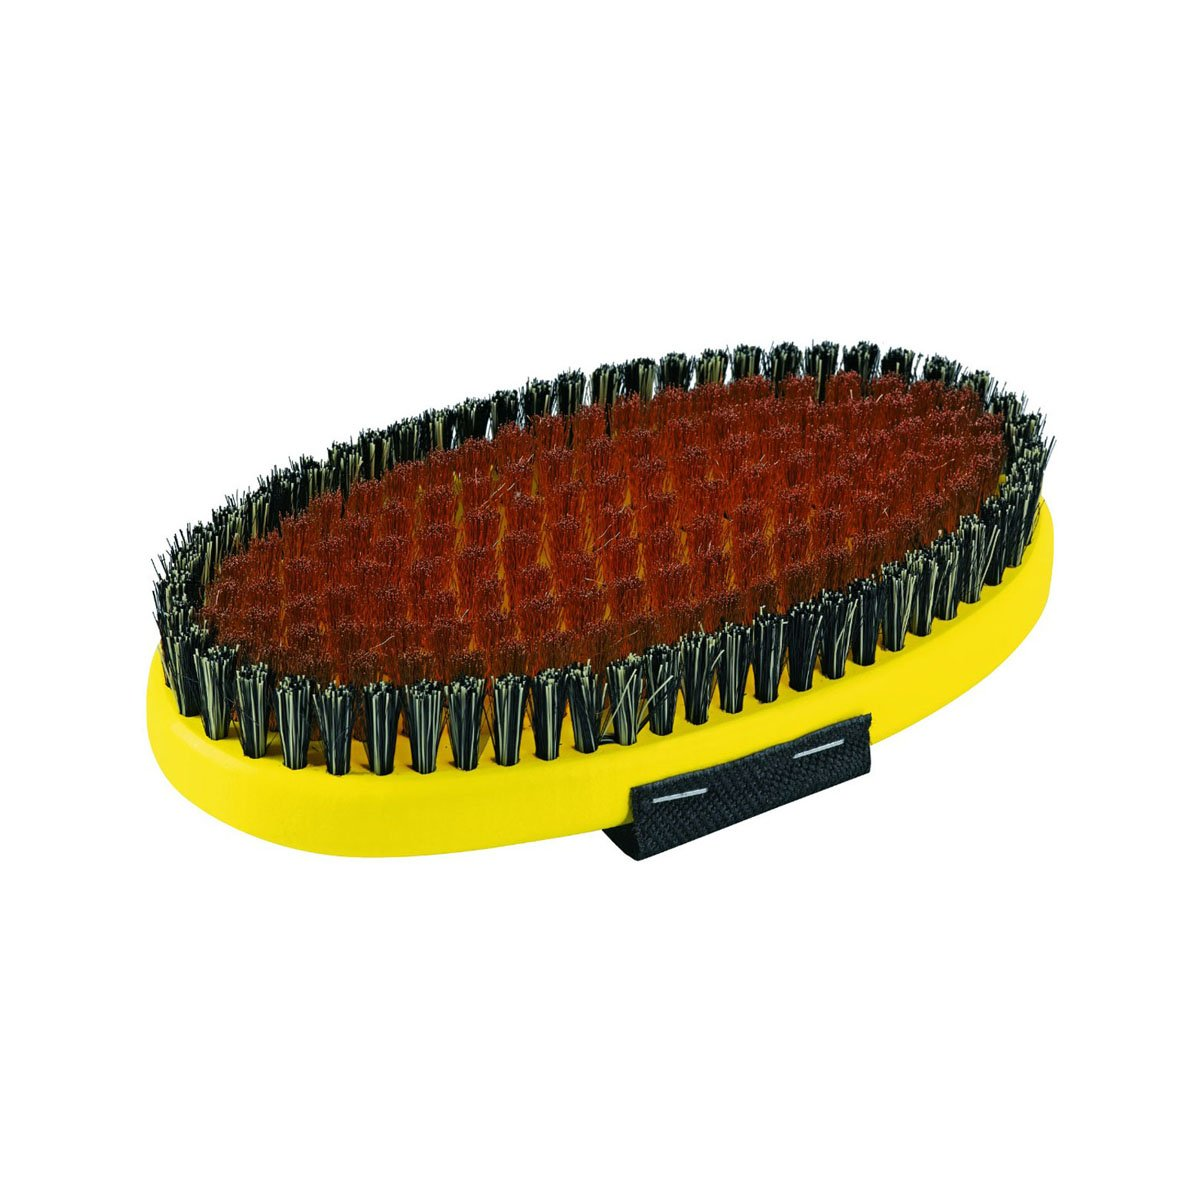 BASE BRUSH OVAL COOPER